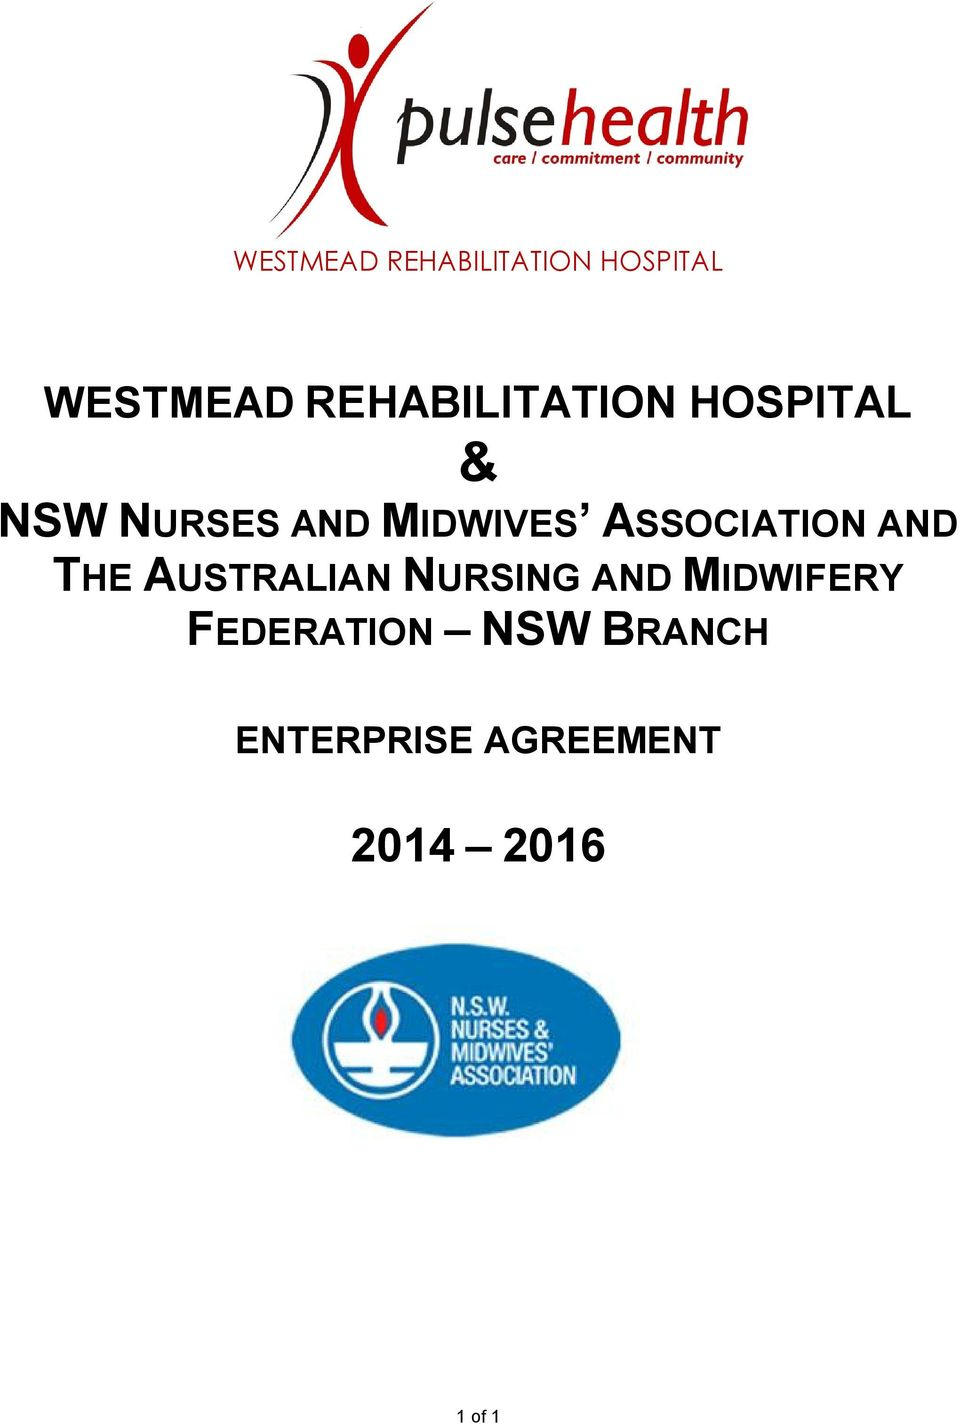 ASSOCIATION AND THE AUSTRALIAN NURSING AND